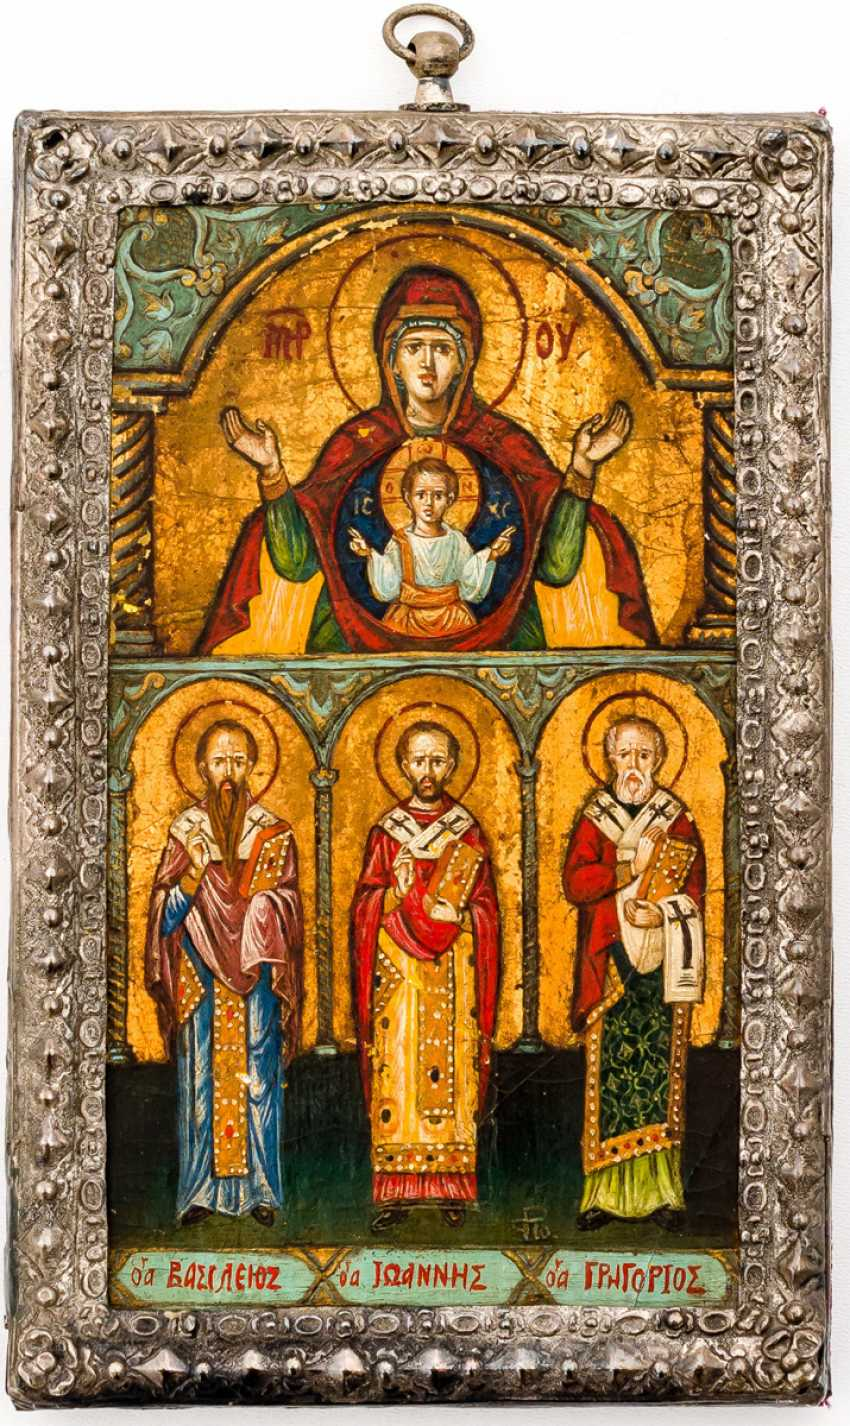 Mother of God of the sign with Hl. Basil, Gregory, John - photo 1